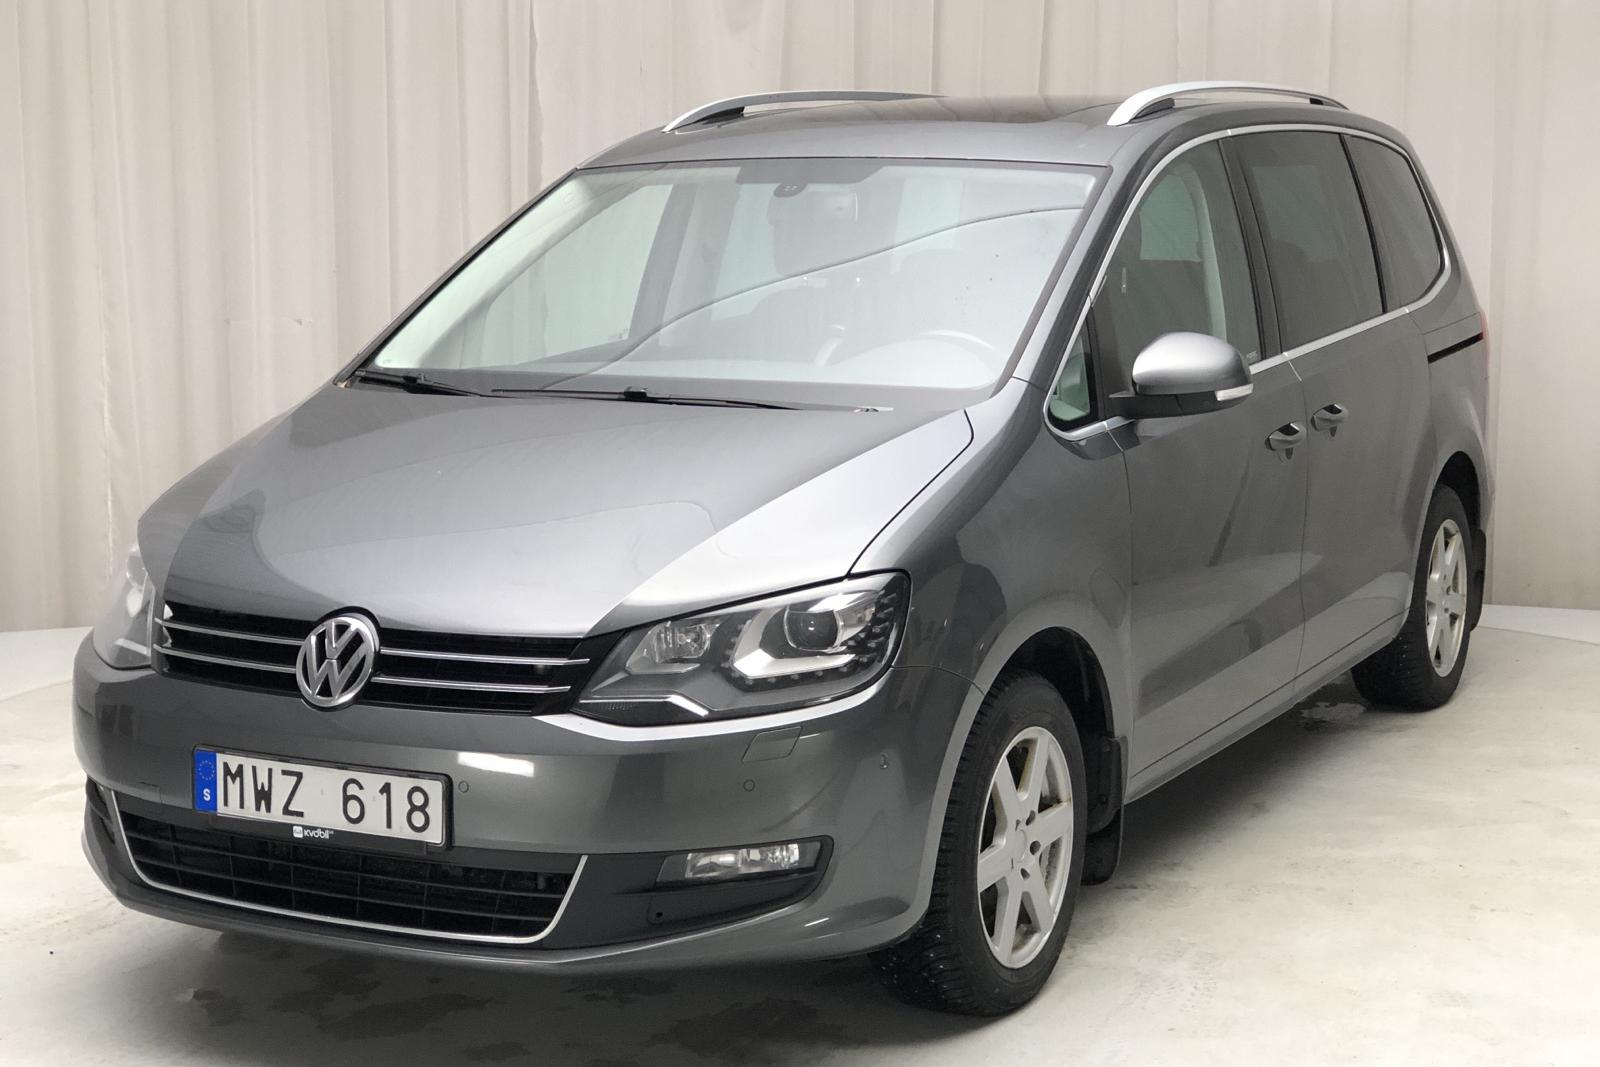 VW Sharan 2.0 TDI BlueMotion Technology (140hk) - 209 750 km - Automatic - gray - 2013